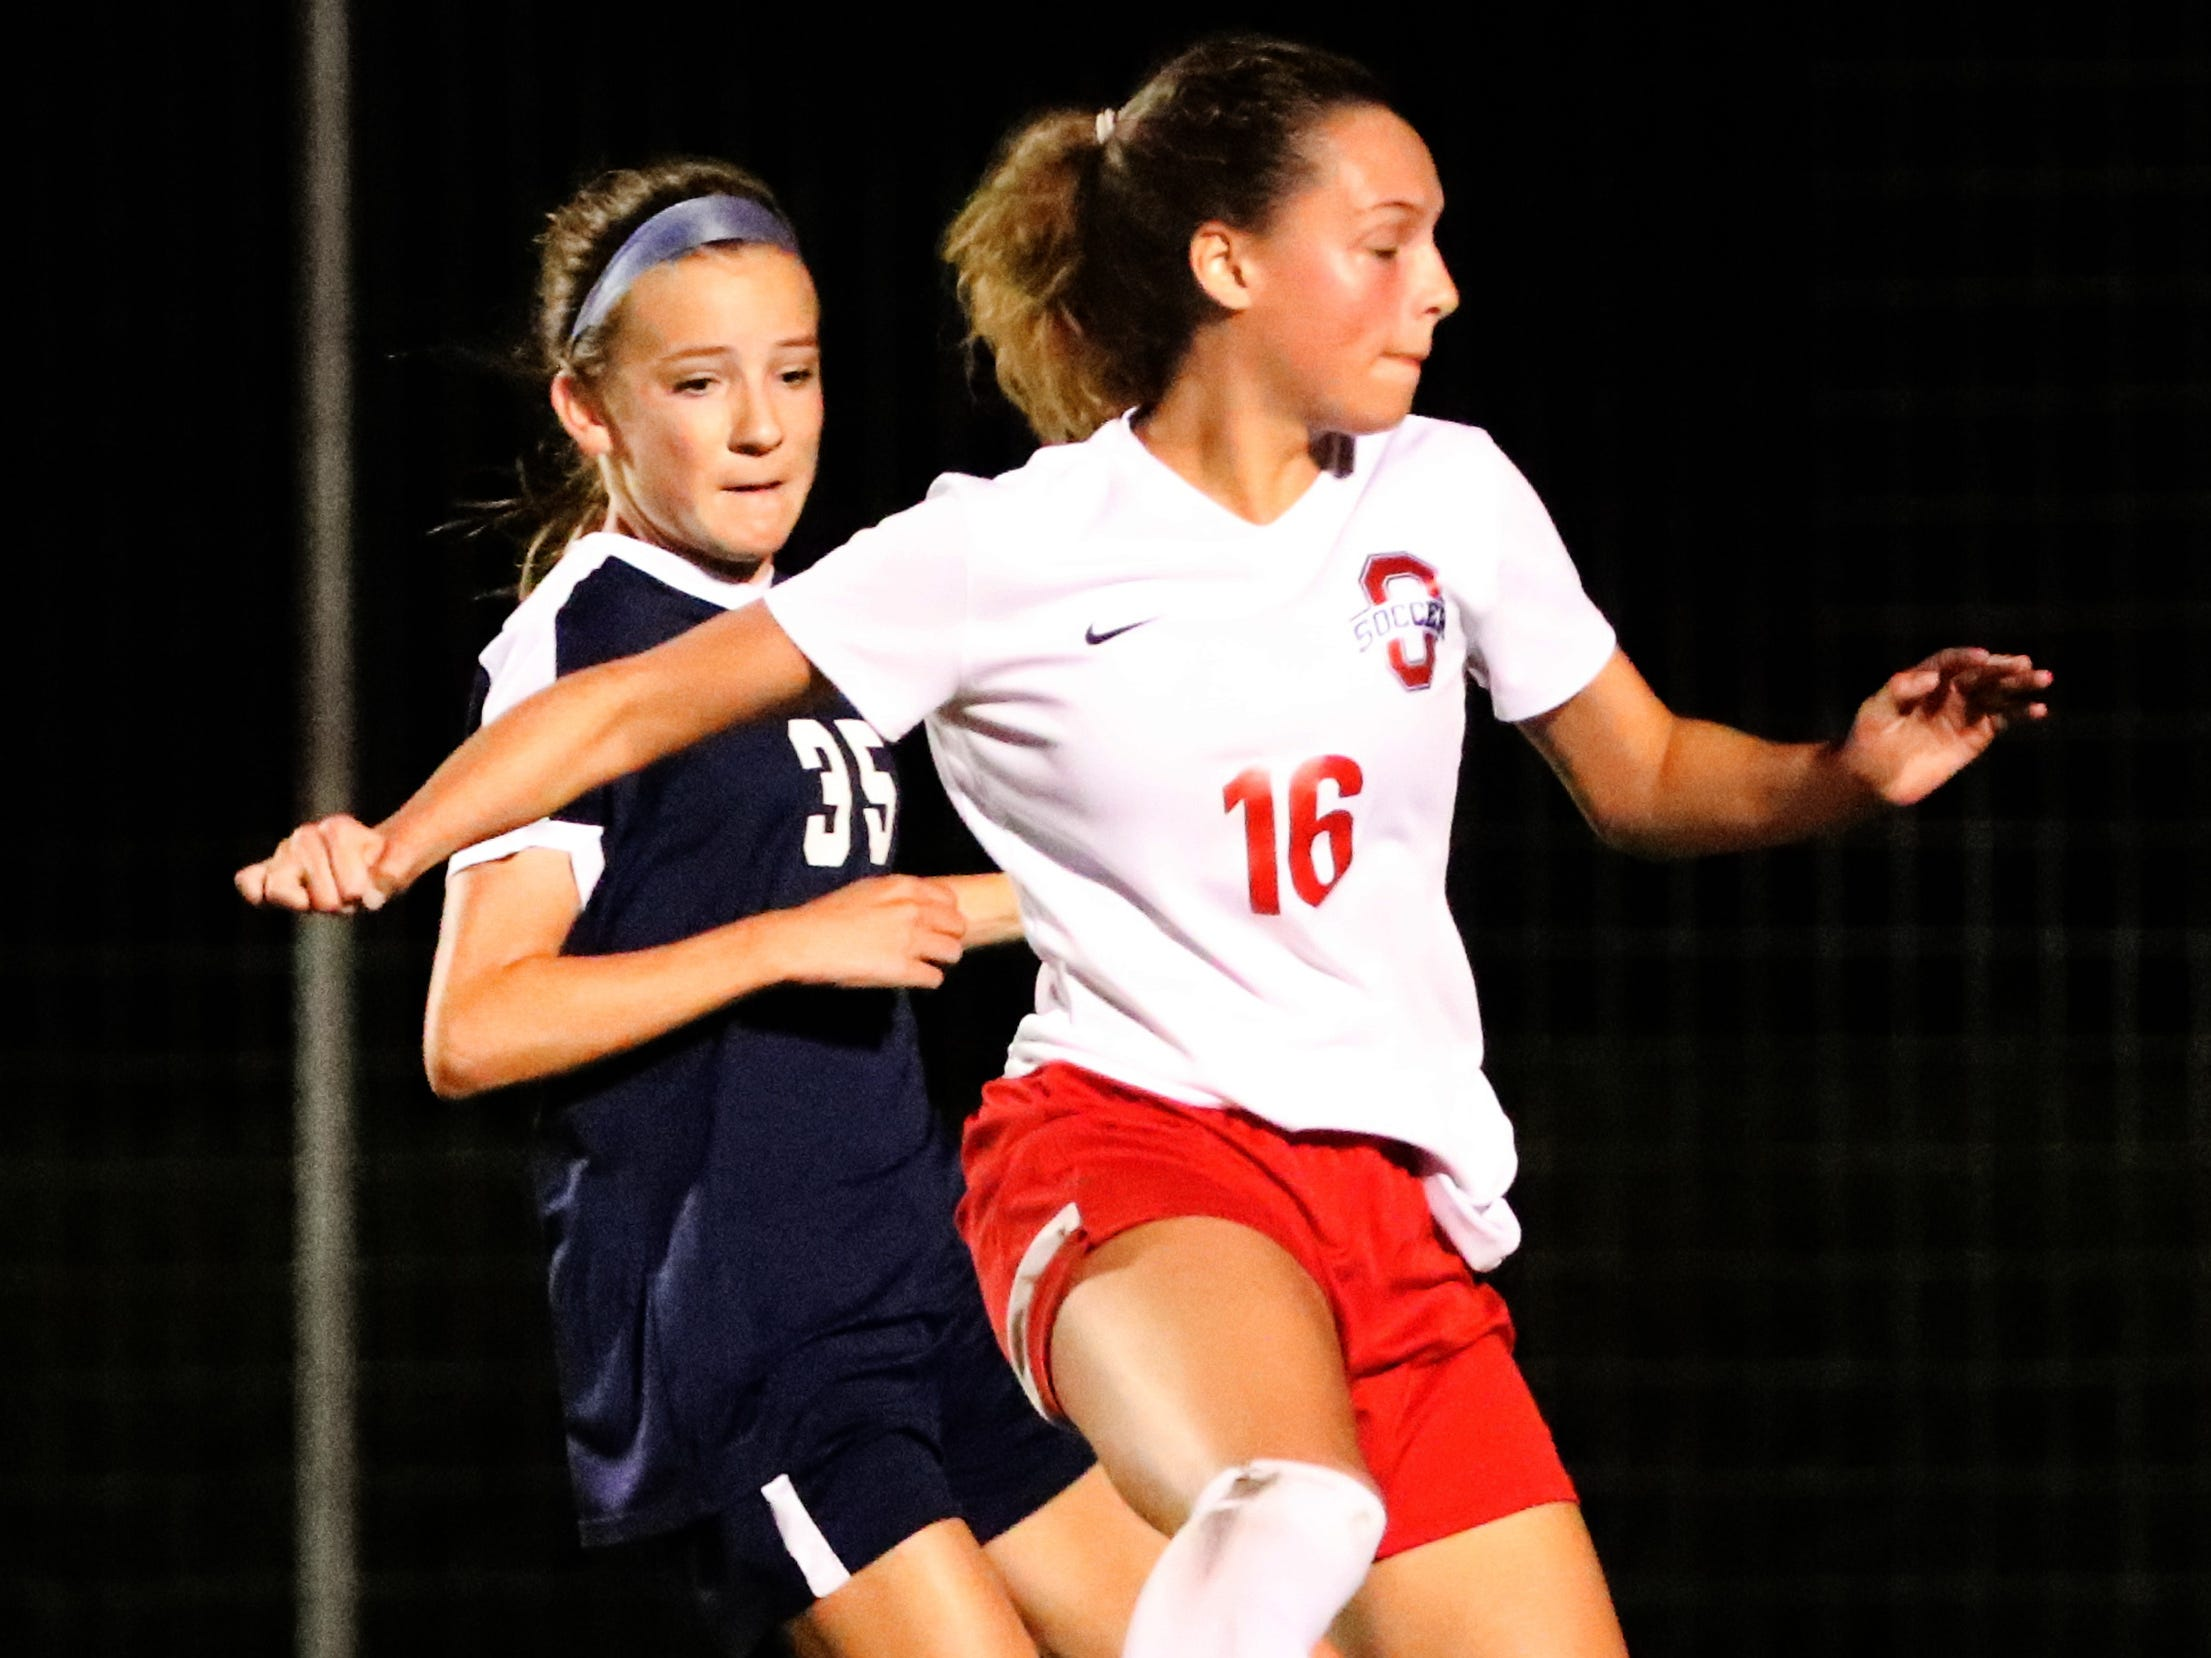 Oakland's Faith Adams (16) moves the ball down the field as Siegel's Allison LaLance (35) comes up from behind her in the semifinals of the 7-AAA Soccer Tournament, on Tuesday,  Oct. 09, 2018 at the Siegel Soccer Complex.